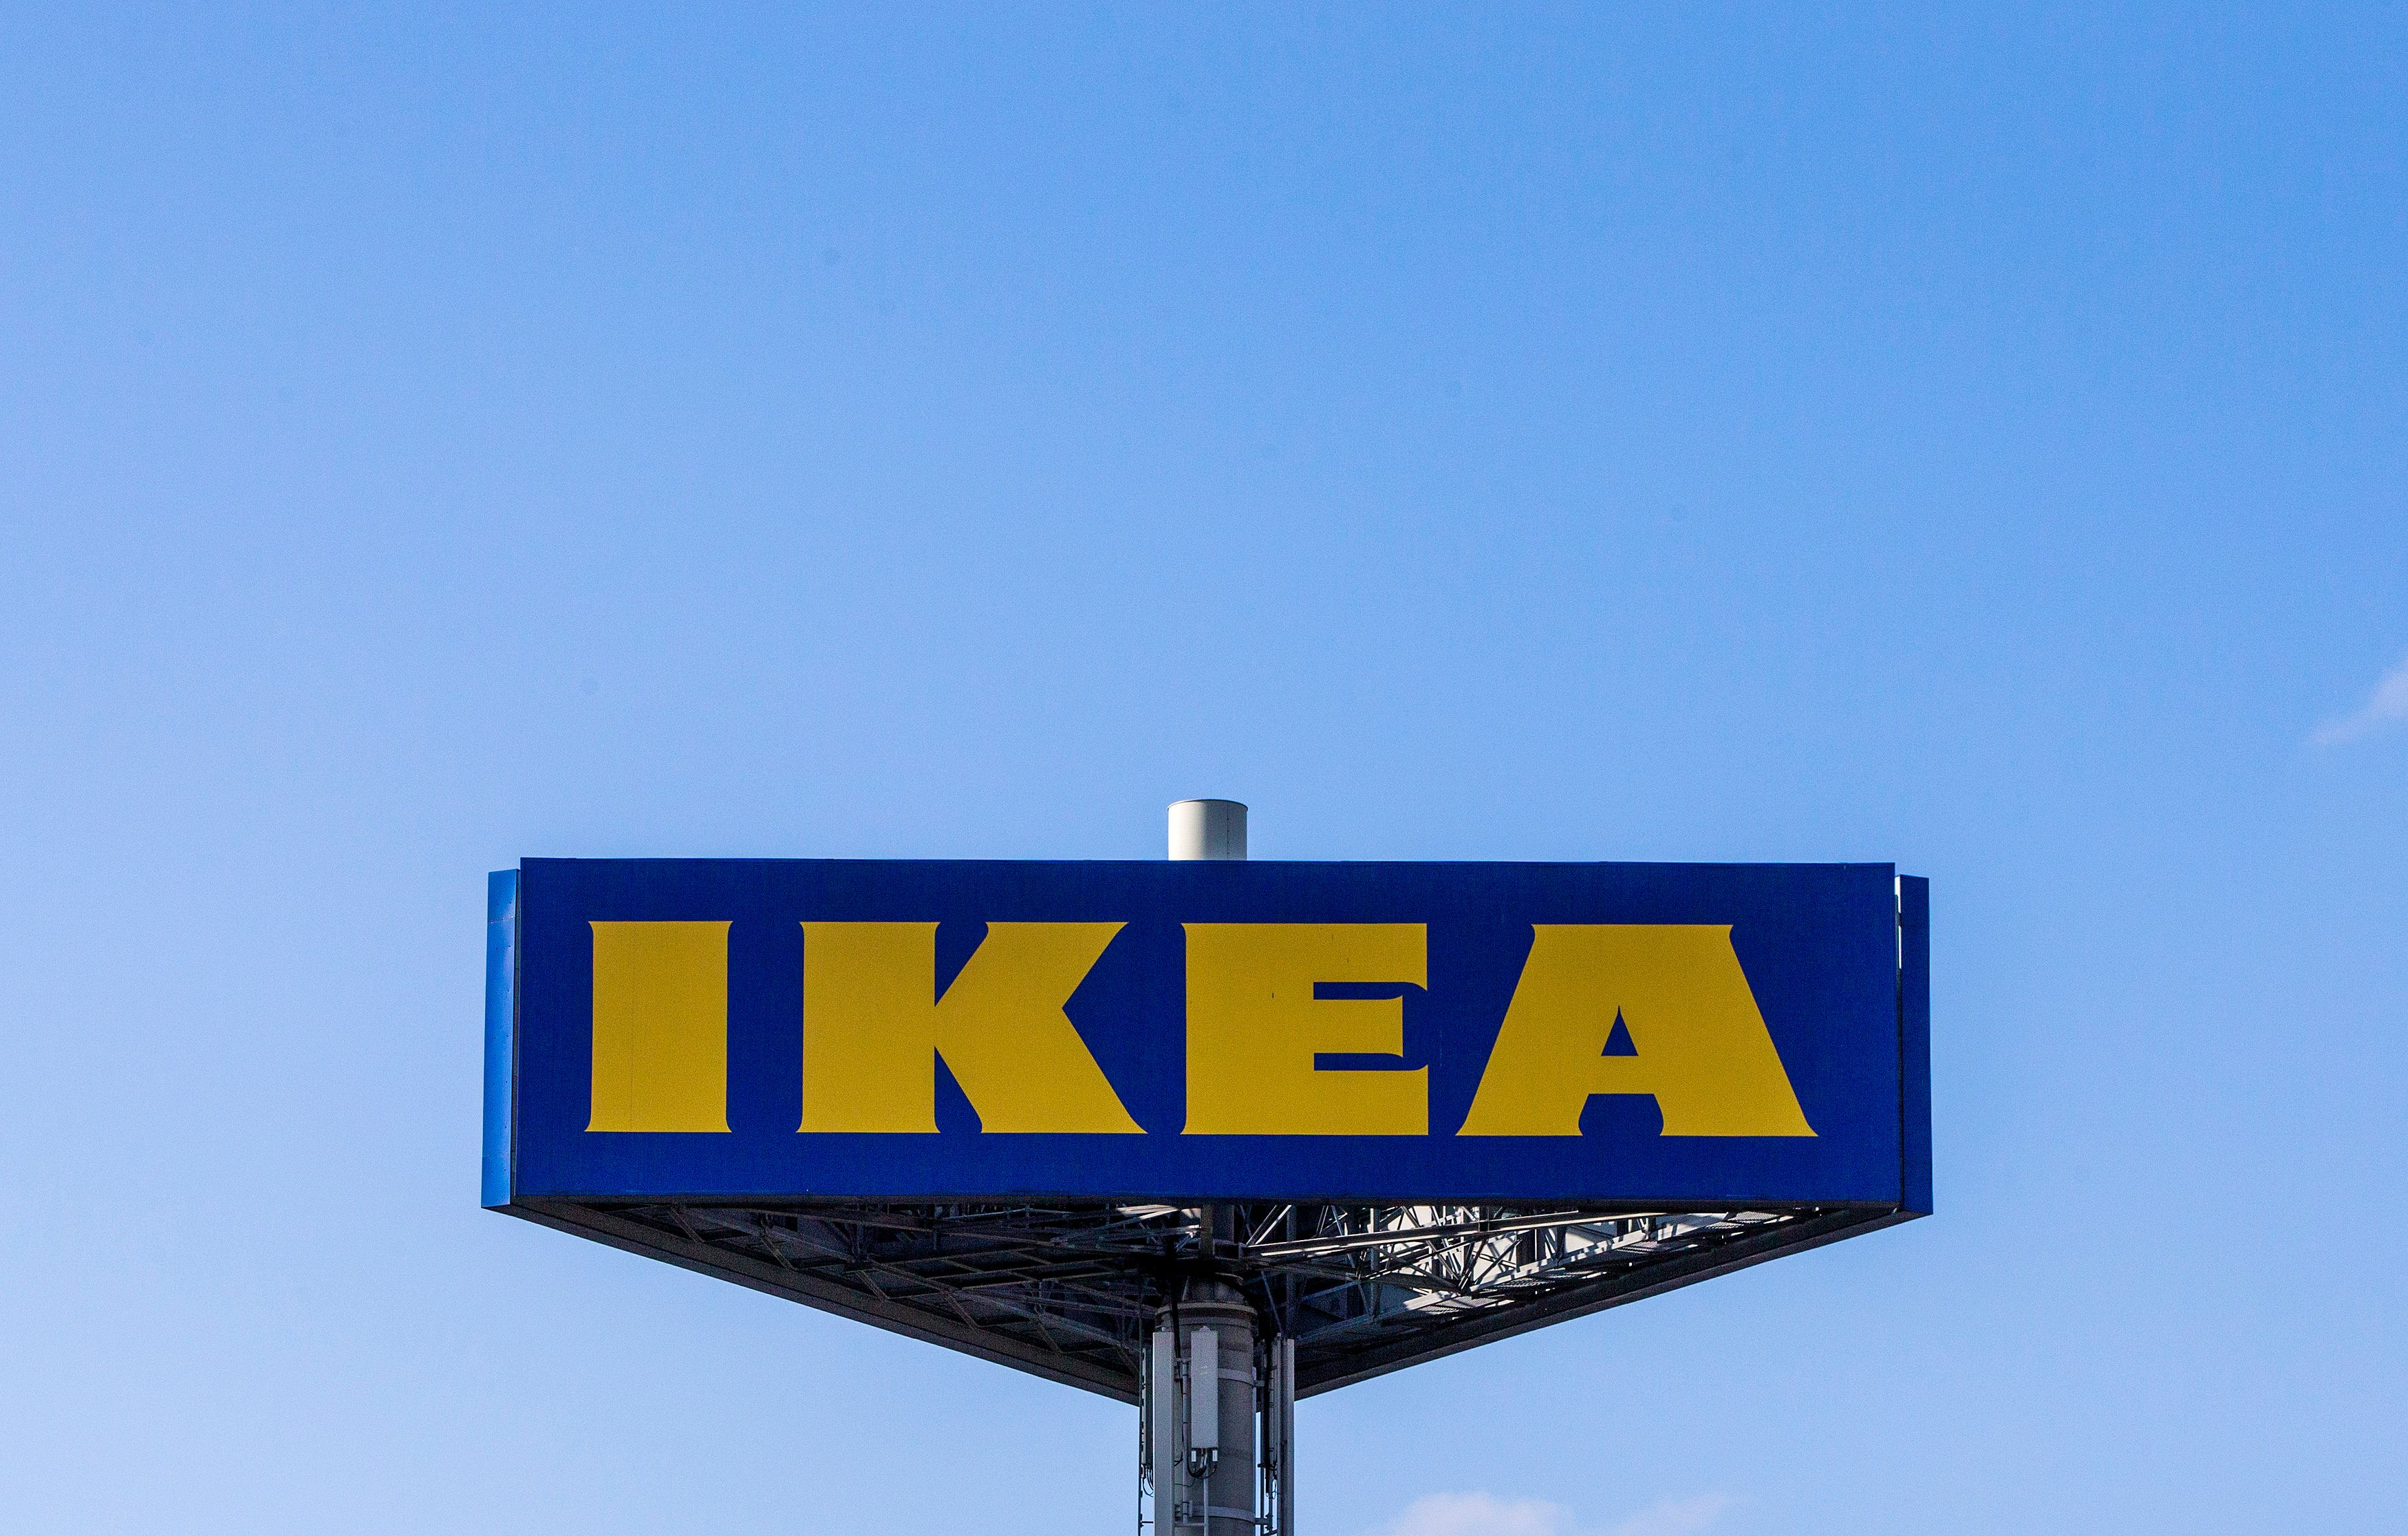 Ikea is giving its employees up to four months of paid parental